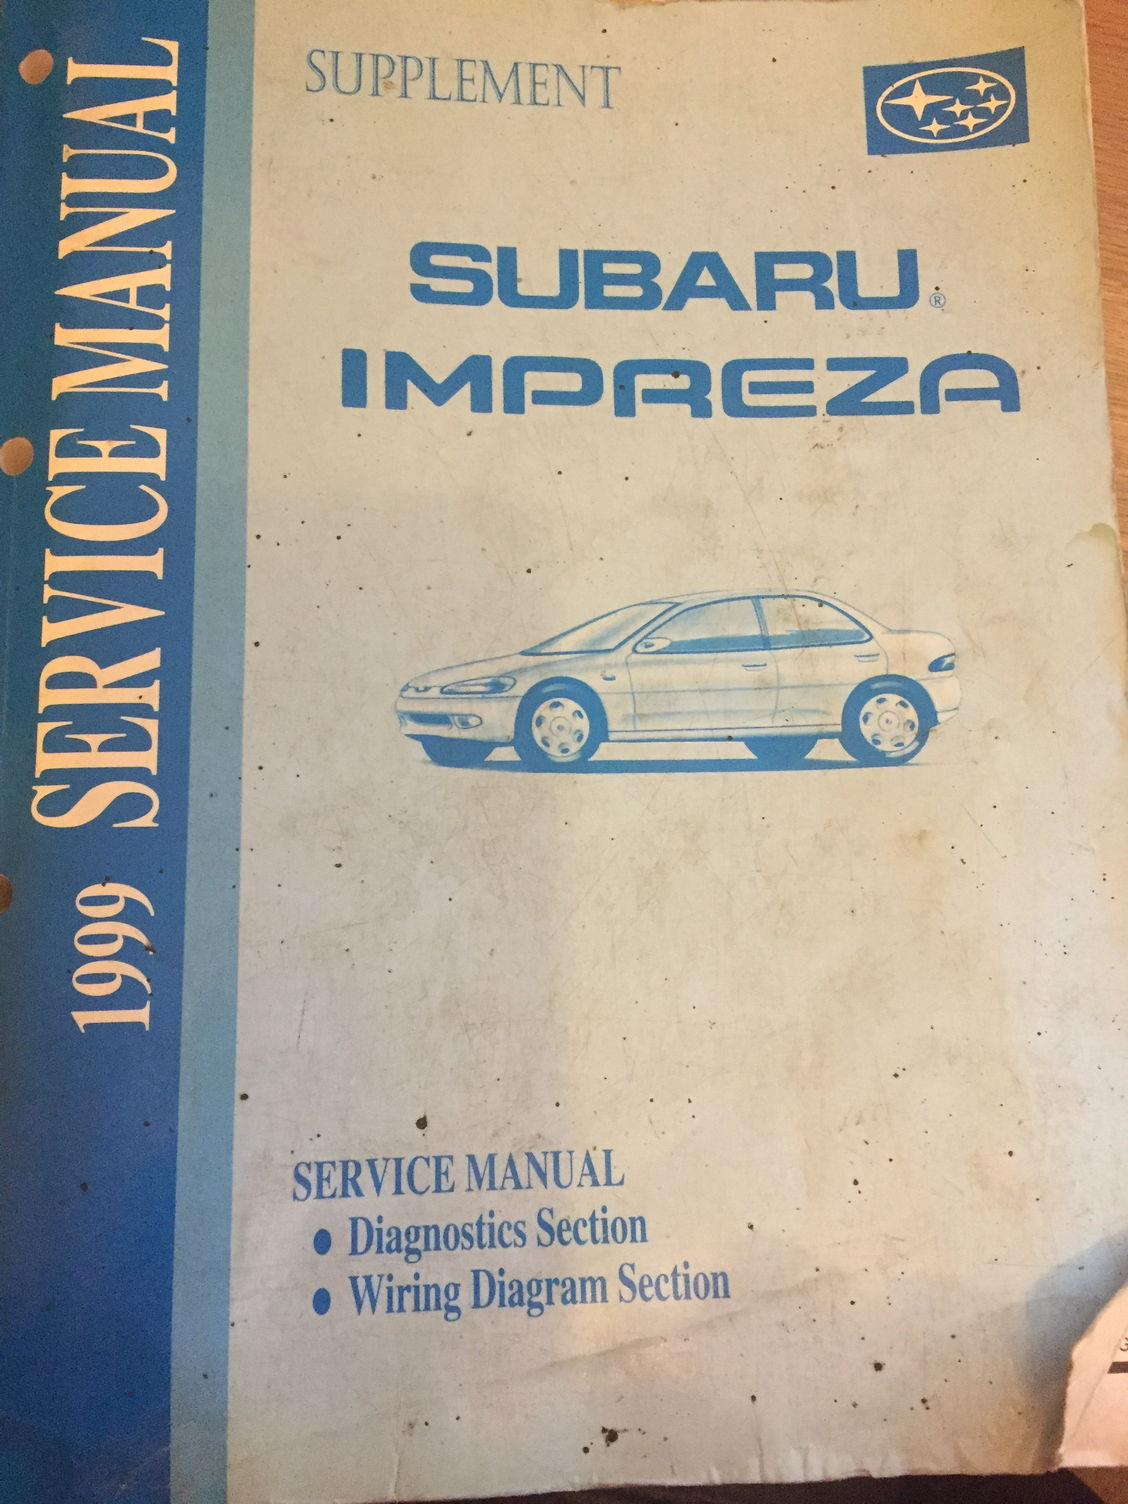 My99 Loom Run Without Immobiliser Unit Subaru Impreza Gc8 Wiring Diagram Let Me Know If You Need Any Pages Scanning